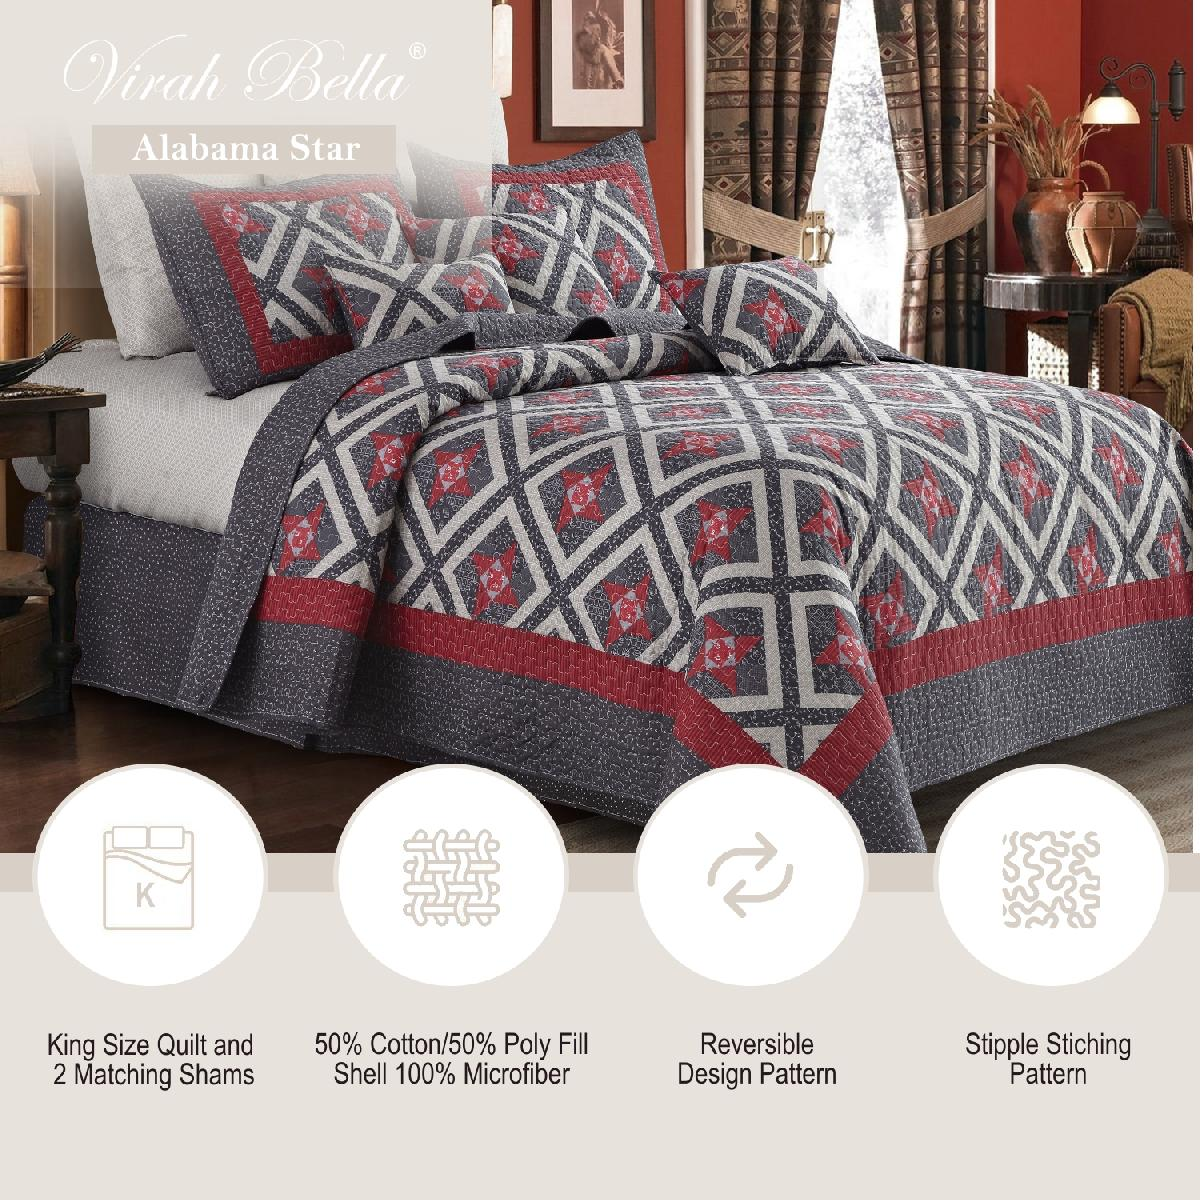 Alabama Star Quilt Set